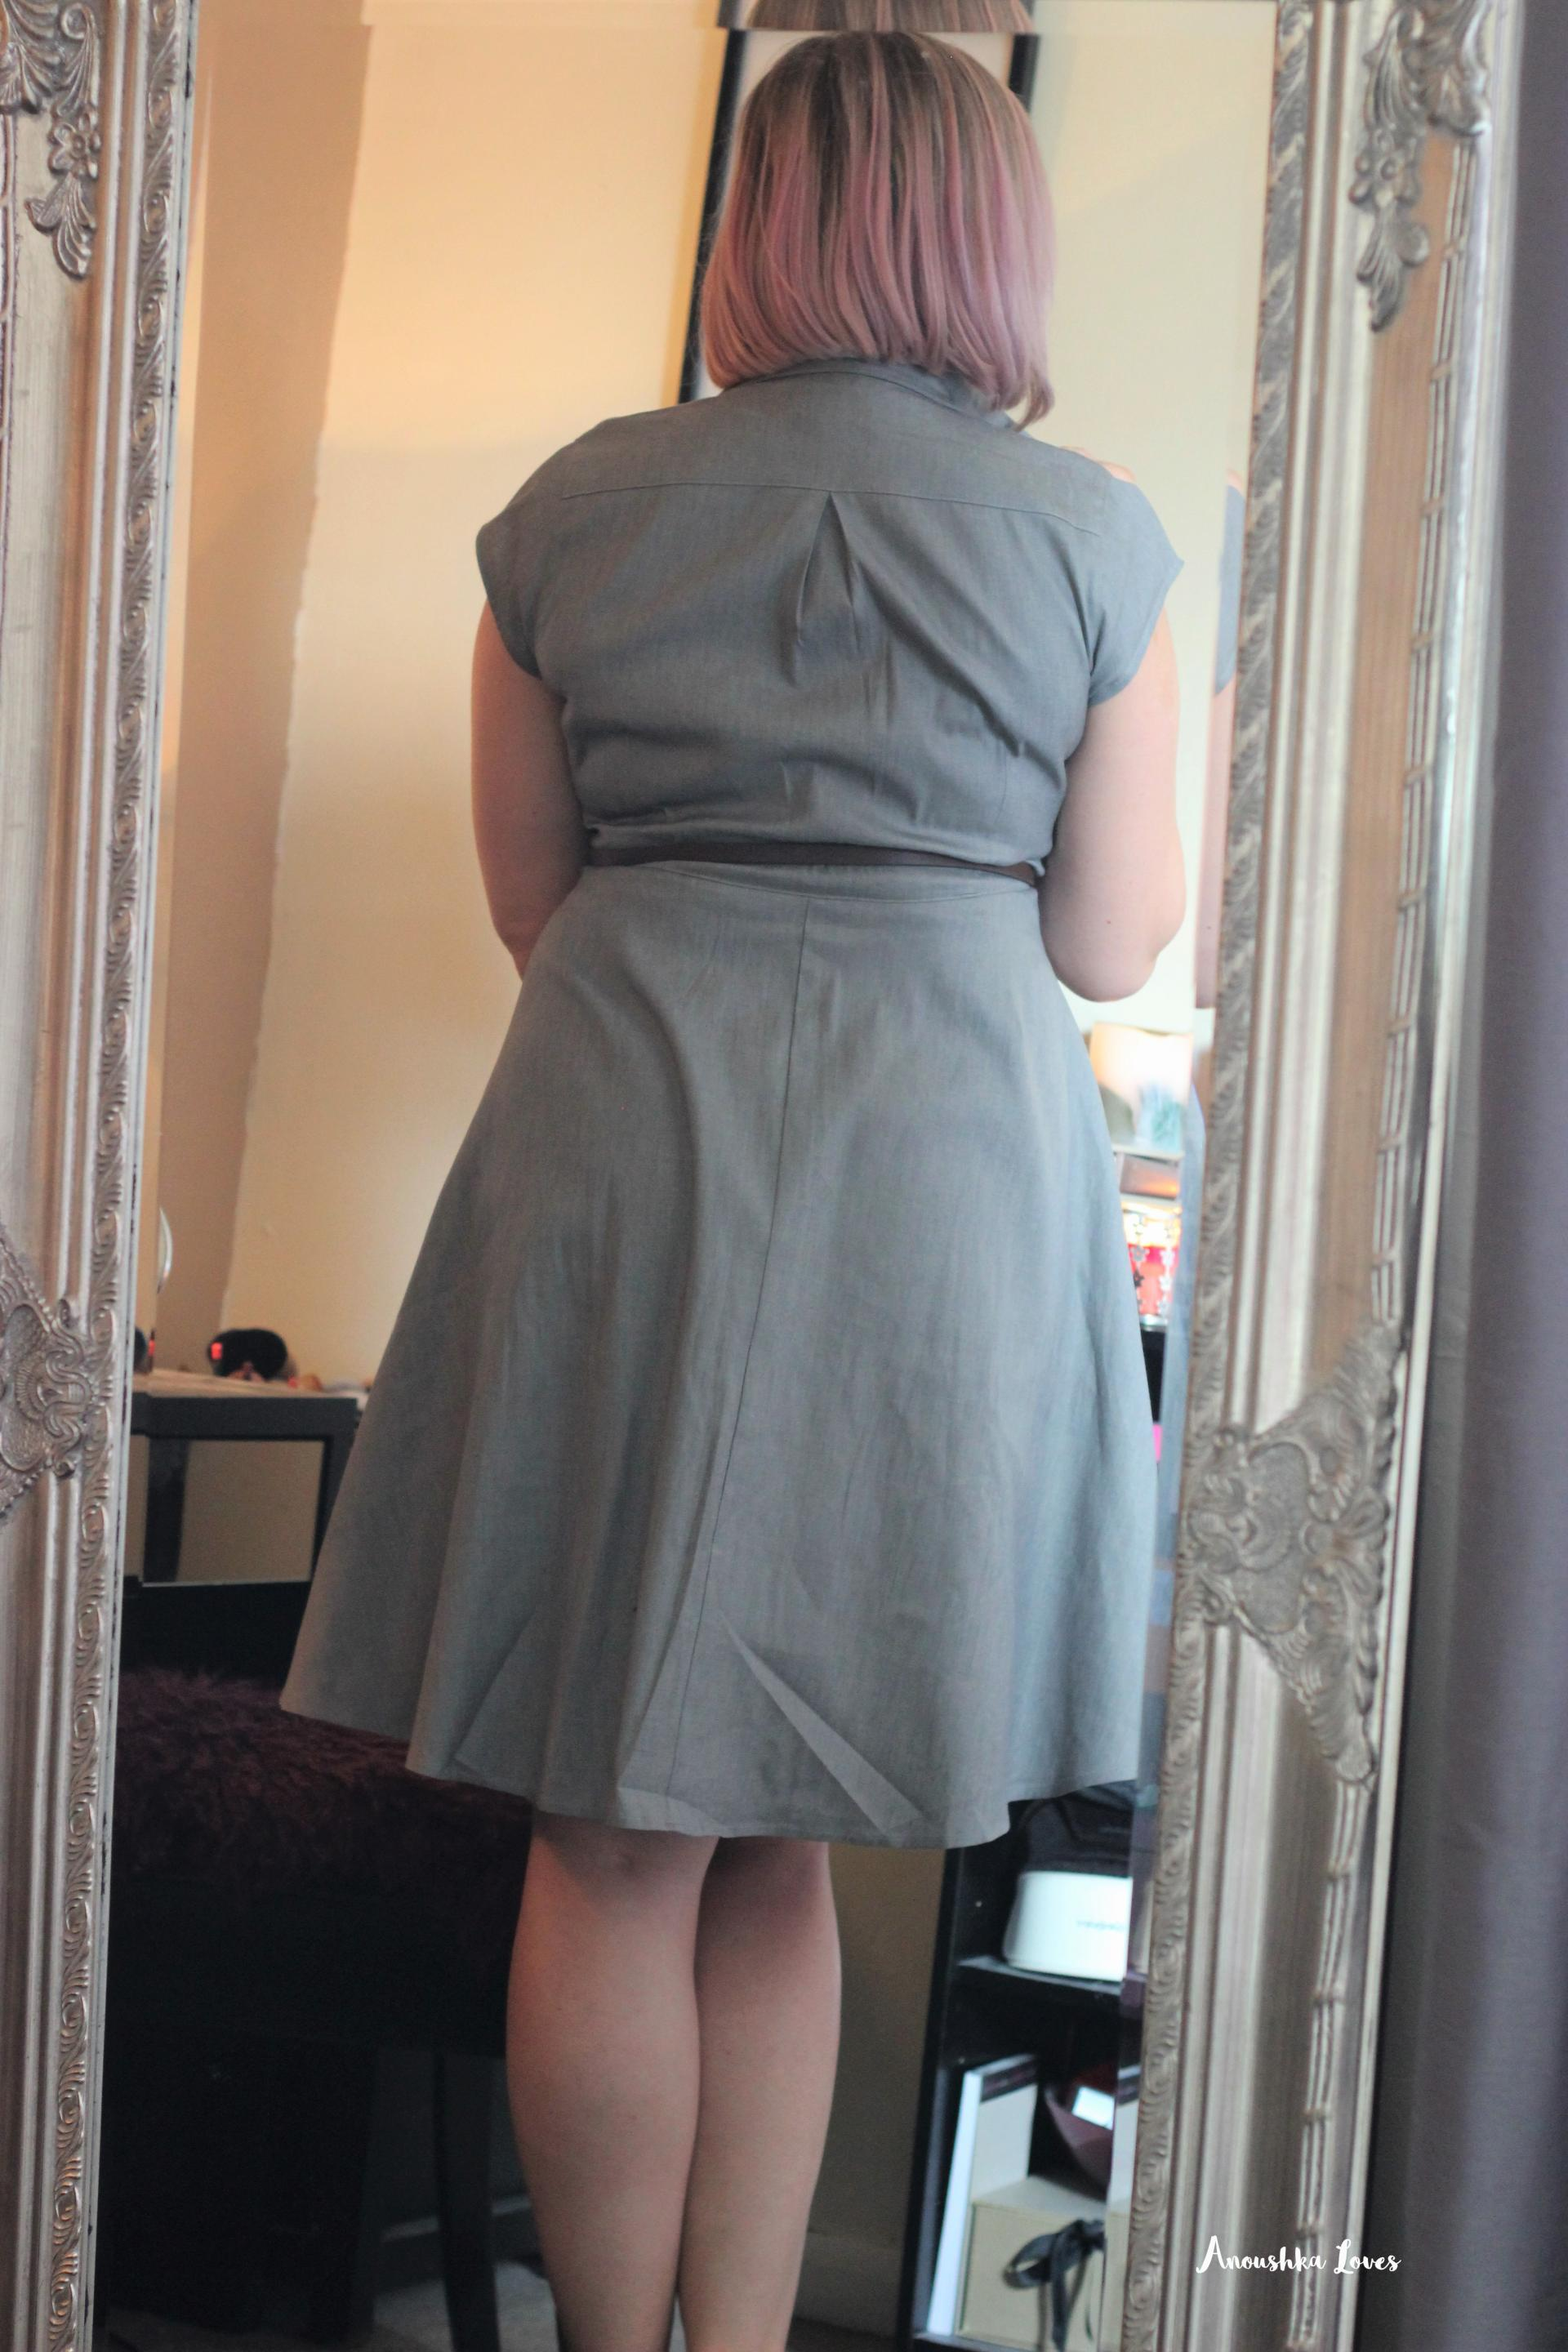 Girl In The Mirror - The Chambray Dress from Two for Joy